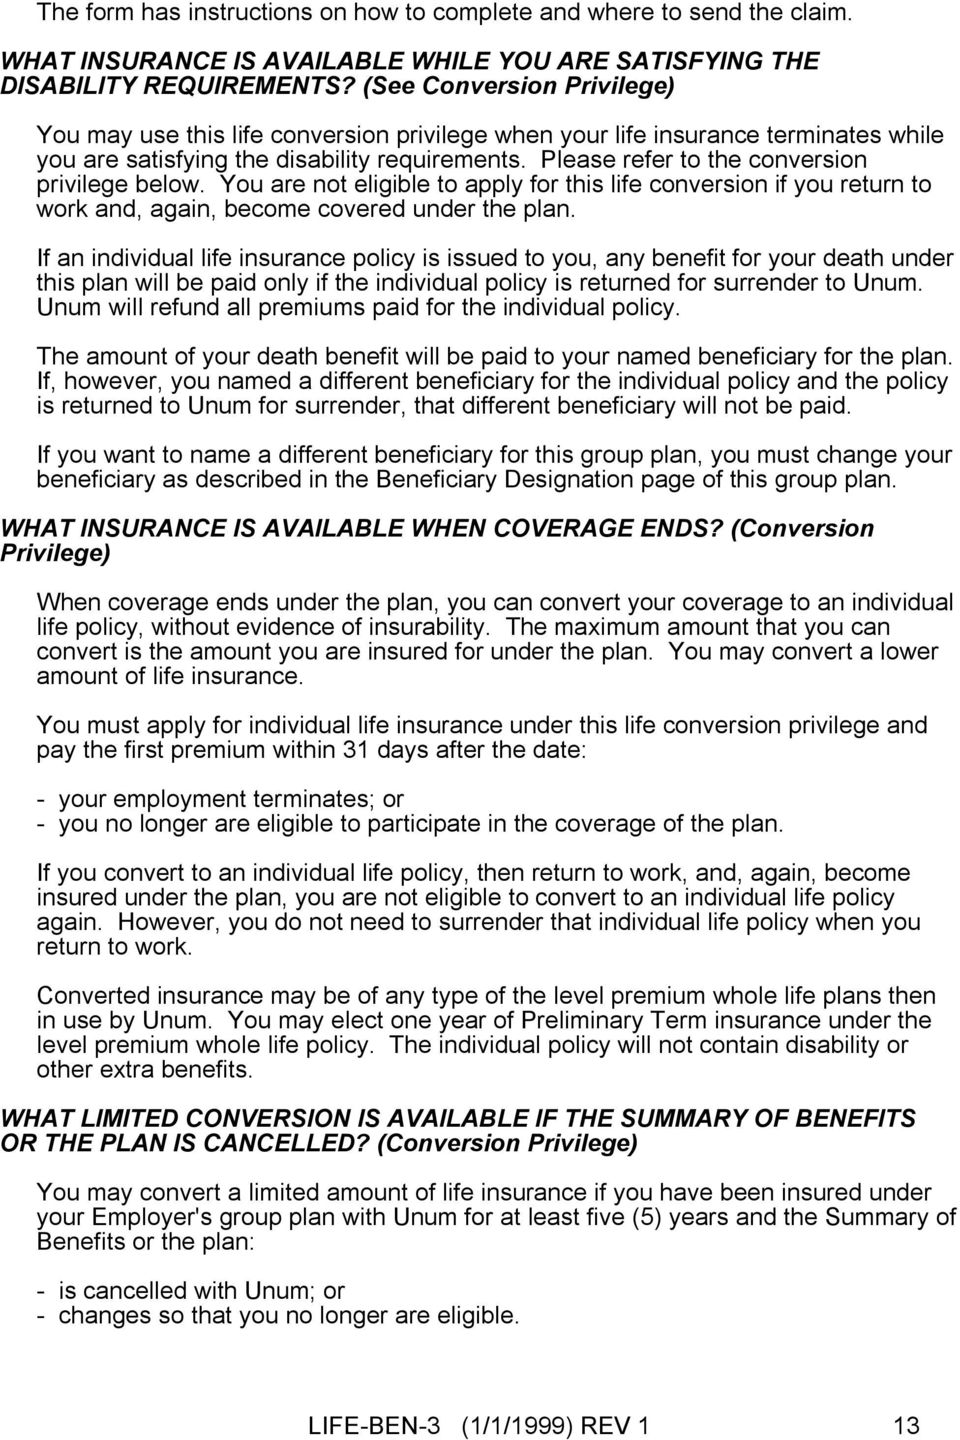 Please refer to the conversion privilege below. You are not eligible to apply for this life conversion if you return to work and, again, become covered under the plan.